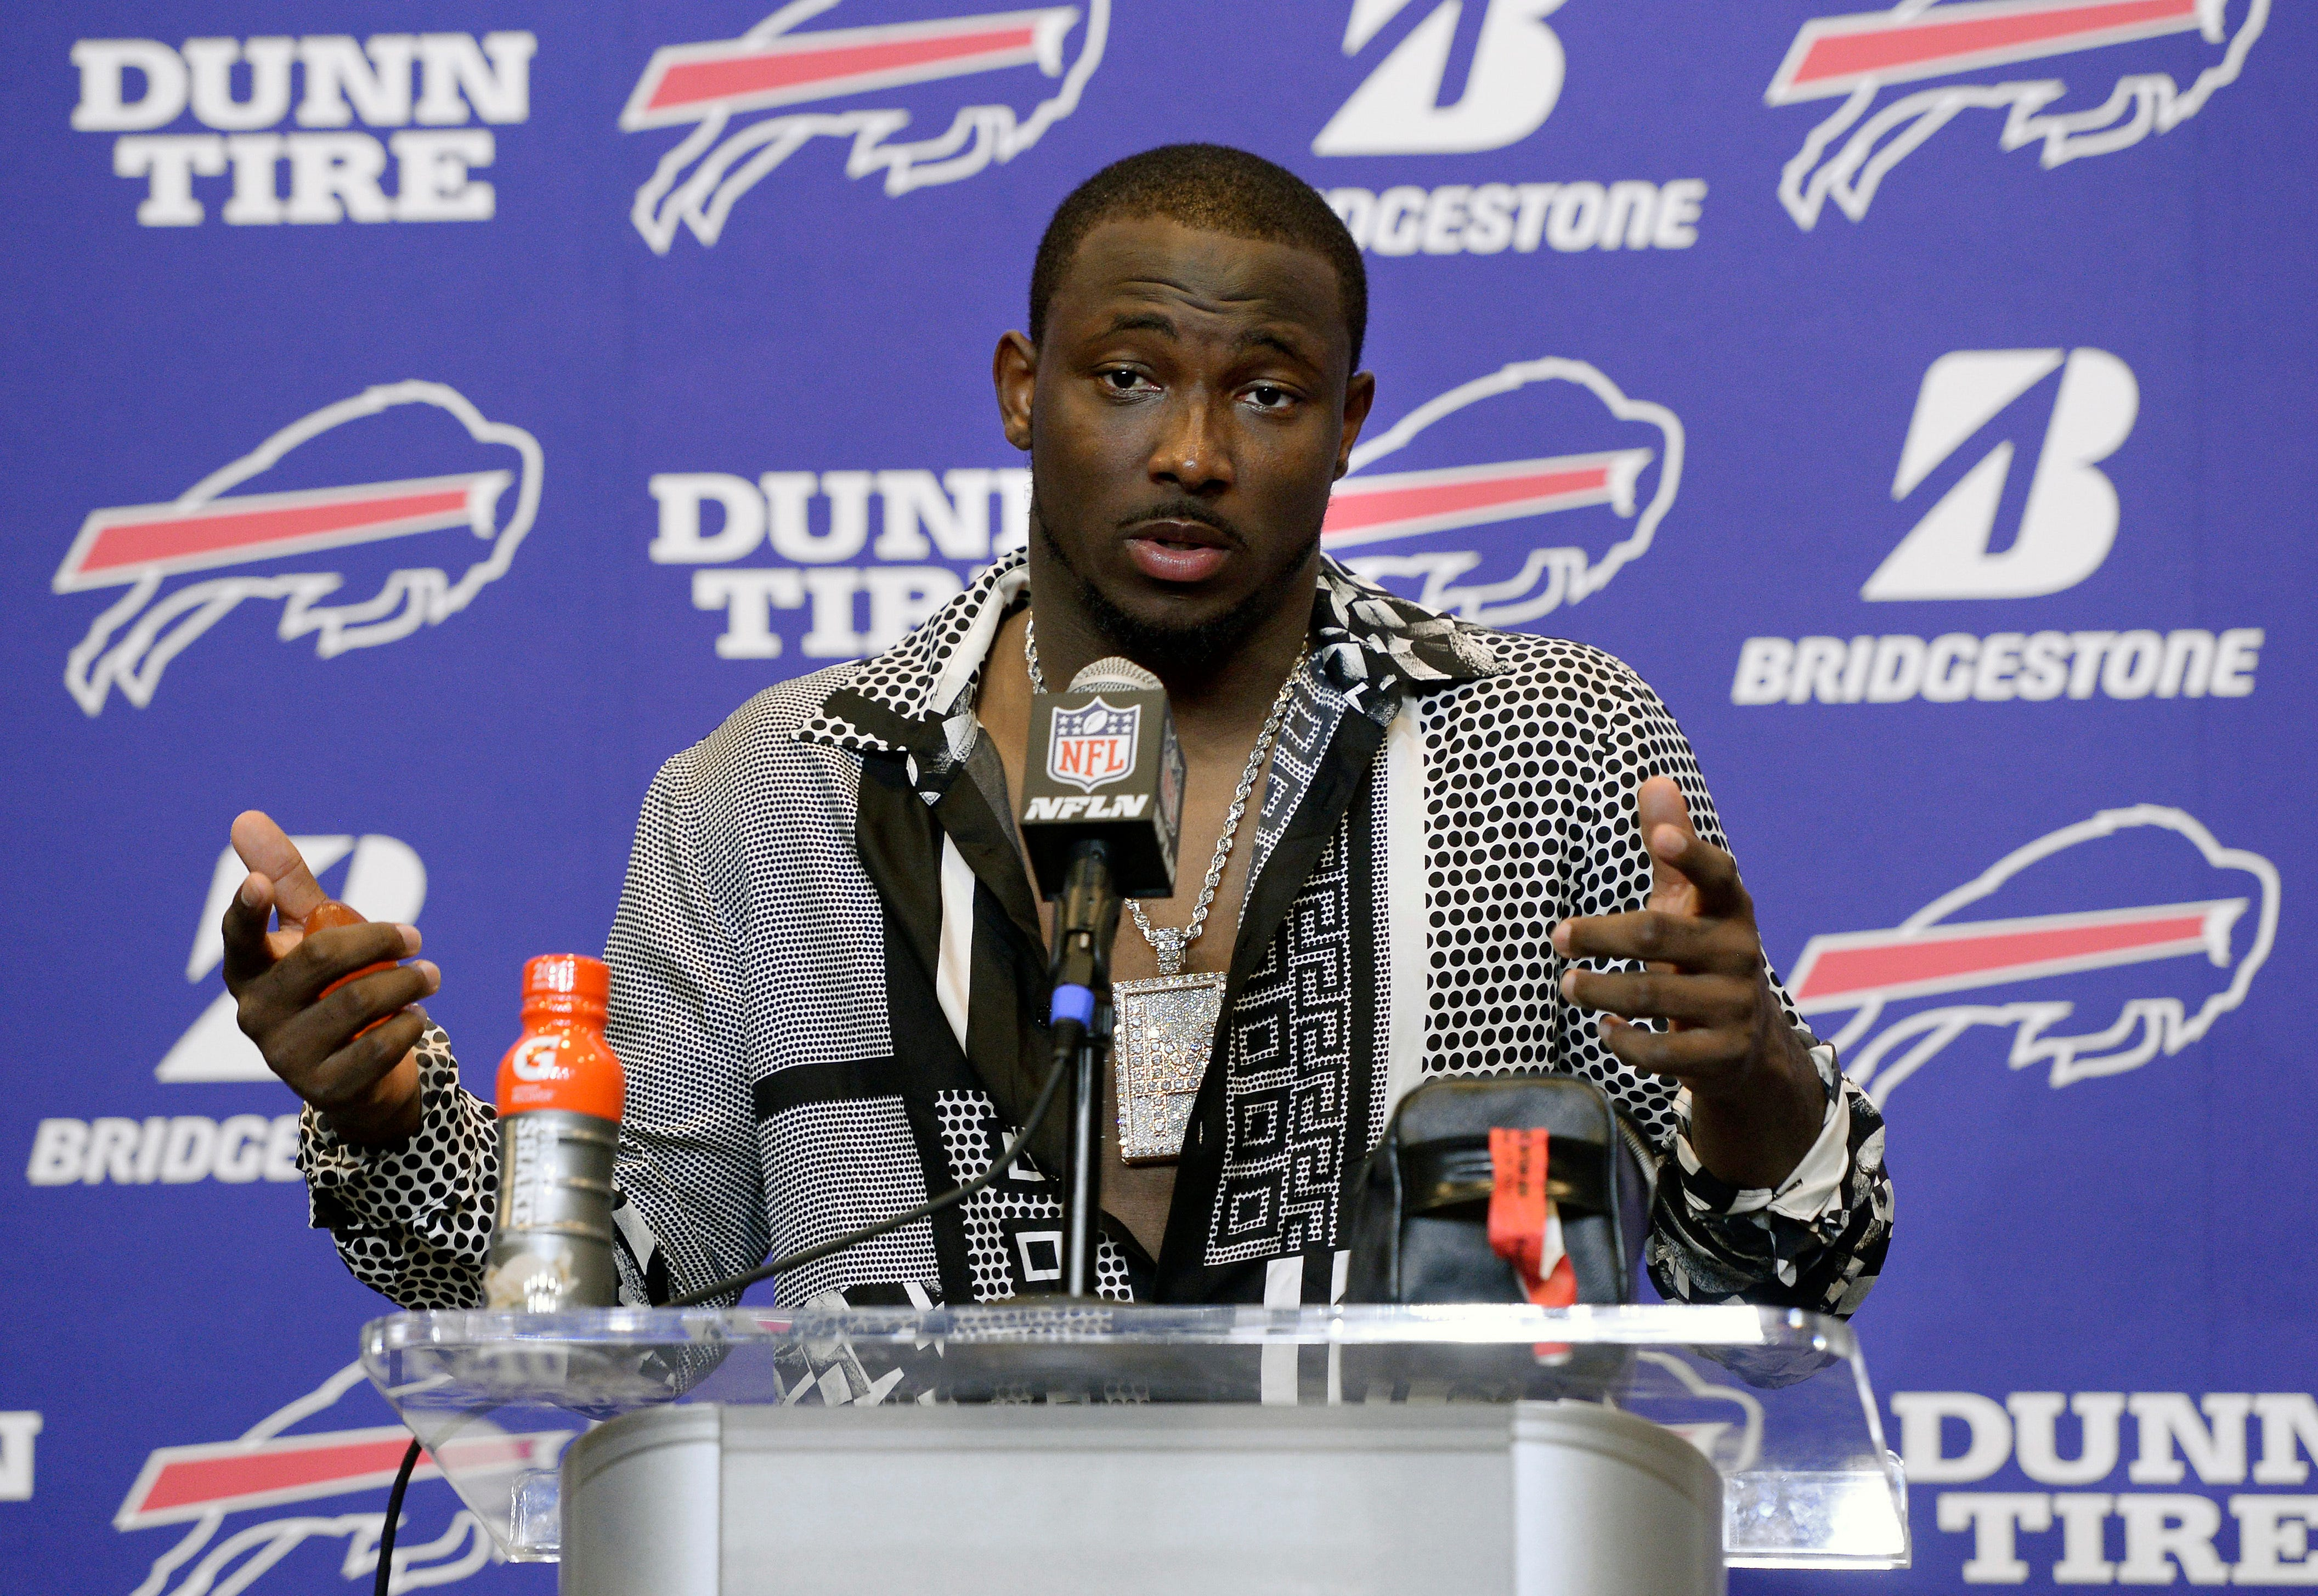 Lawyer: NFL star LeSean McCoy orchestrated assault of woman